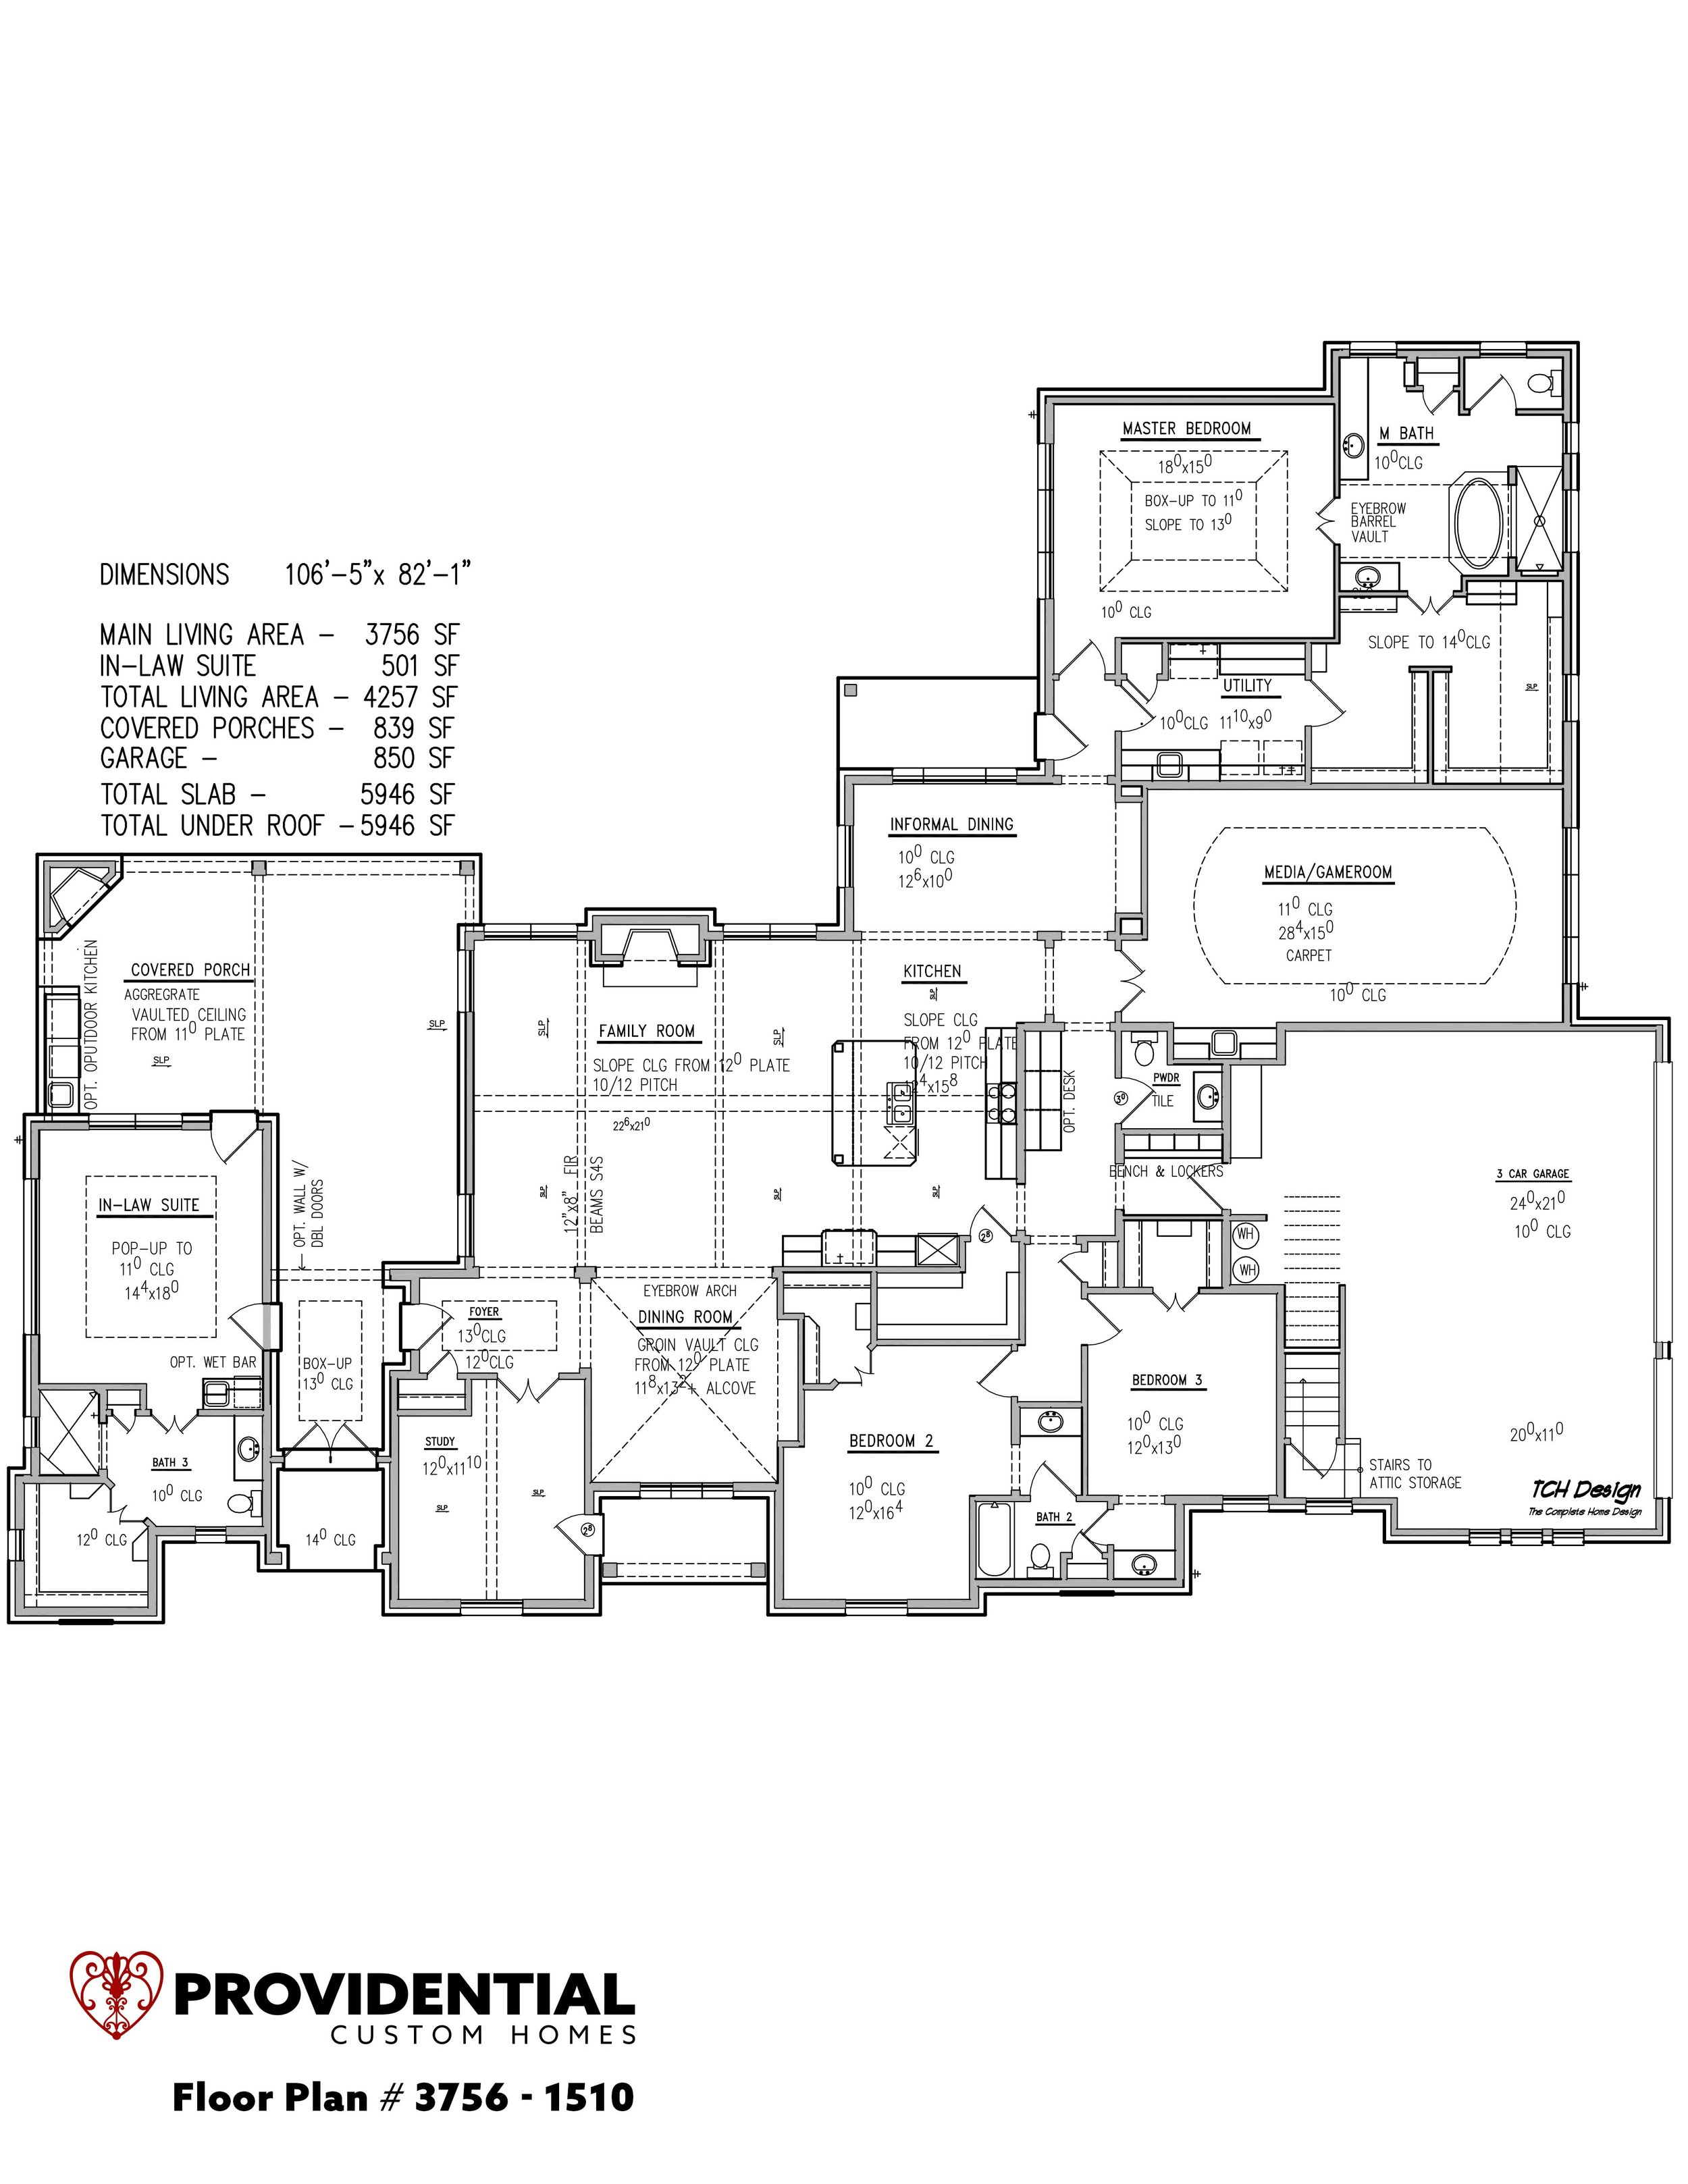 The FLOOR PLAN #3756 - 1510.jpg